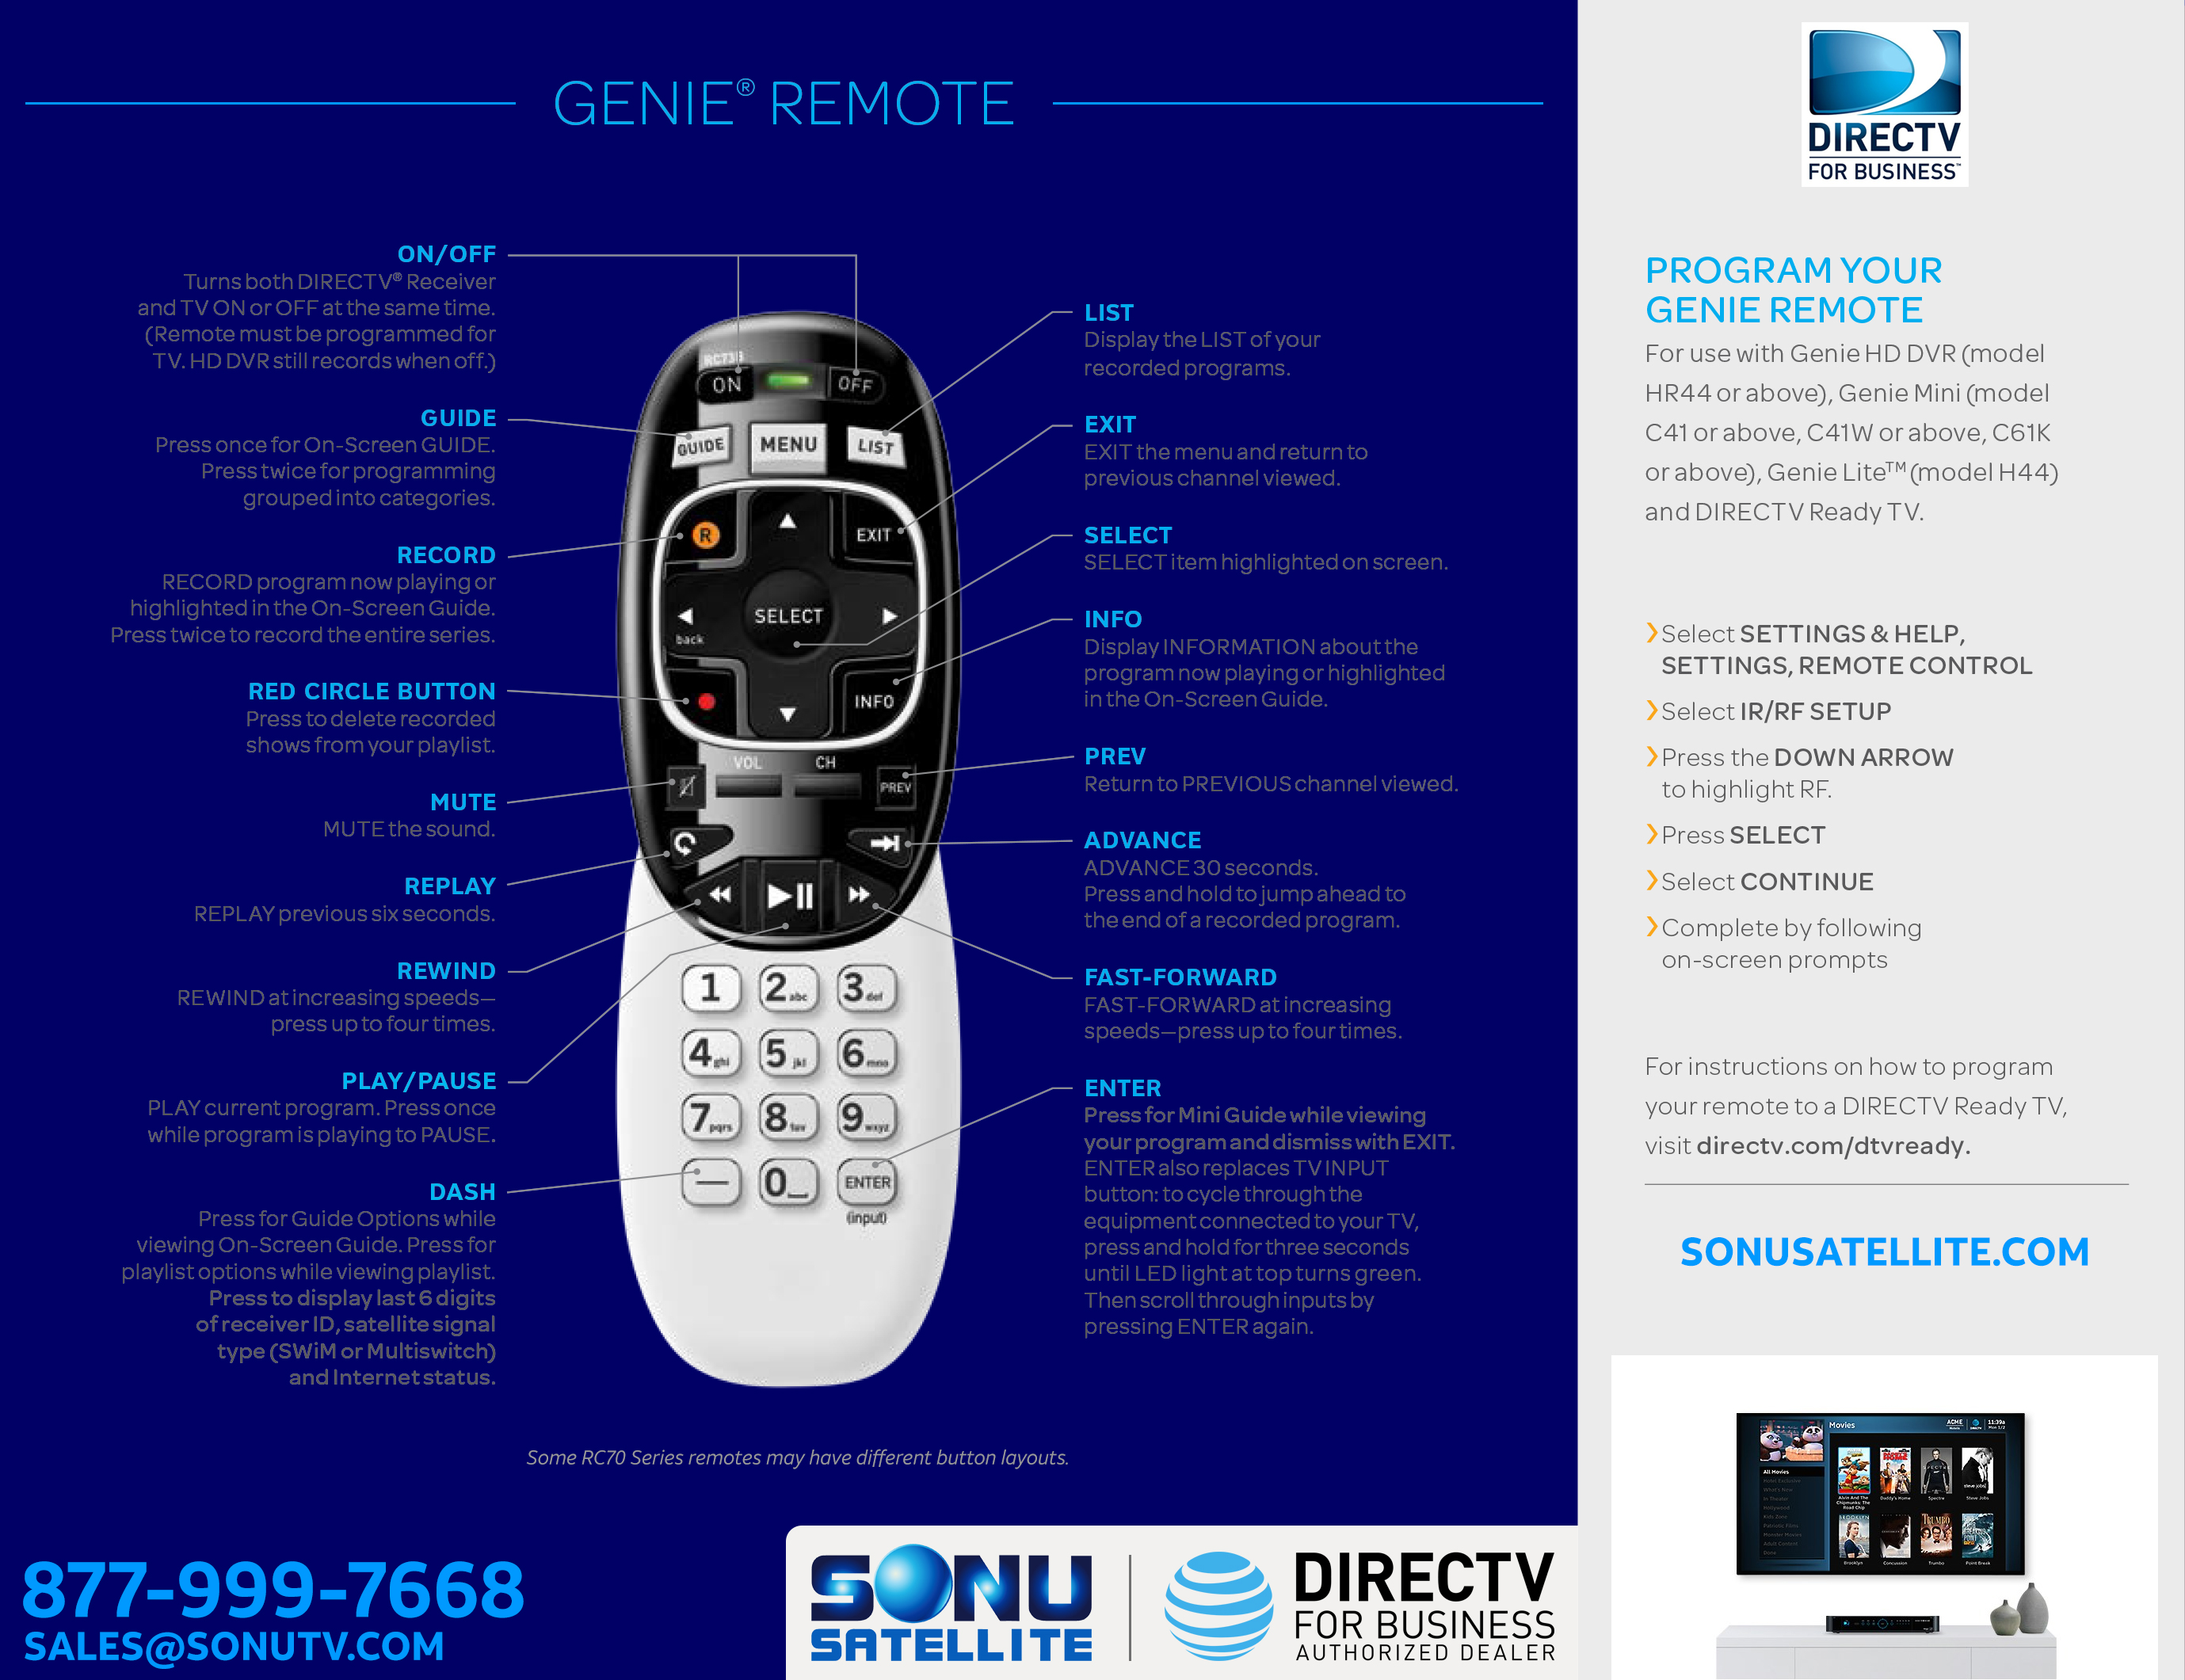 directv remote troubleshooting and guide sonu satellite tv rh sonusatellite  com direct tv remote manual download